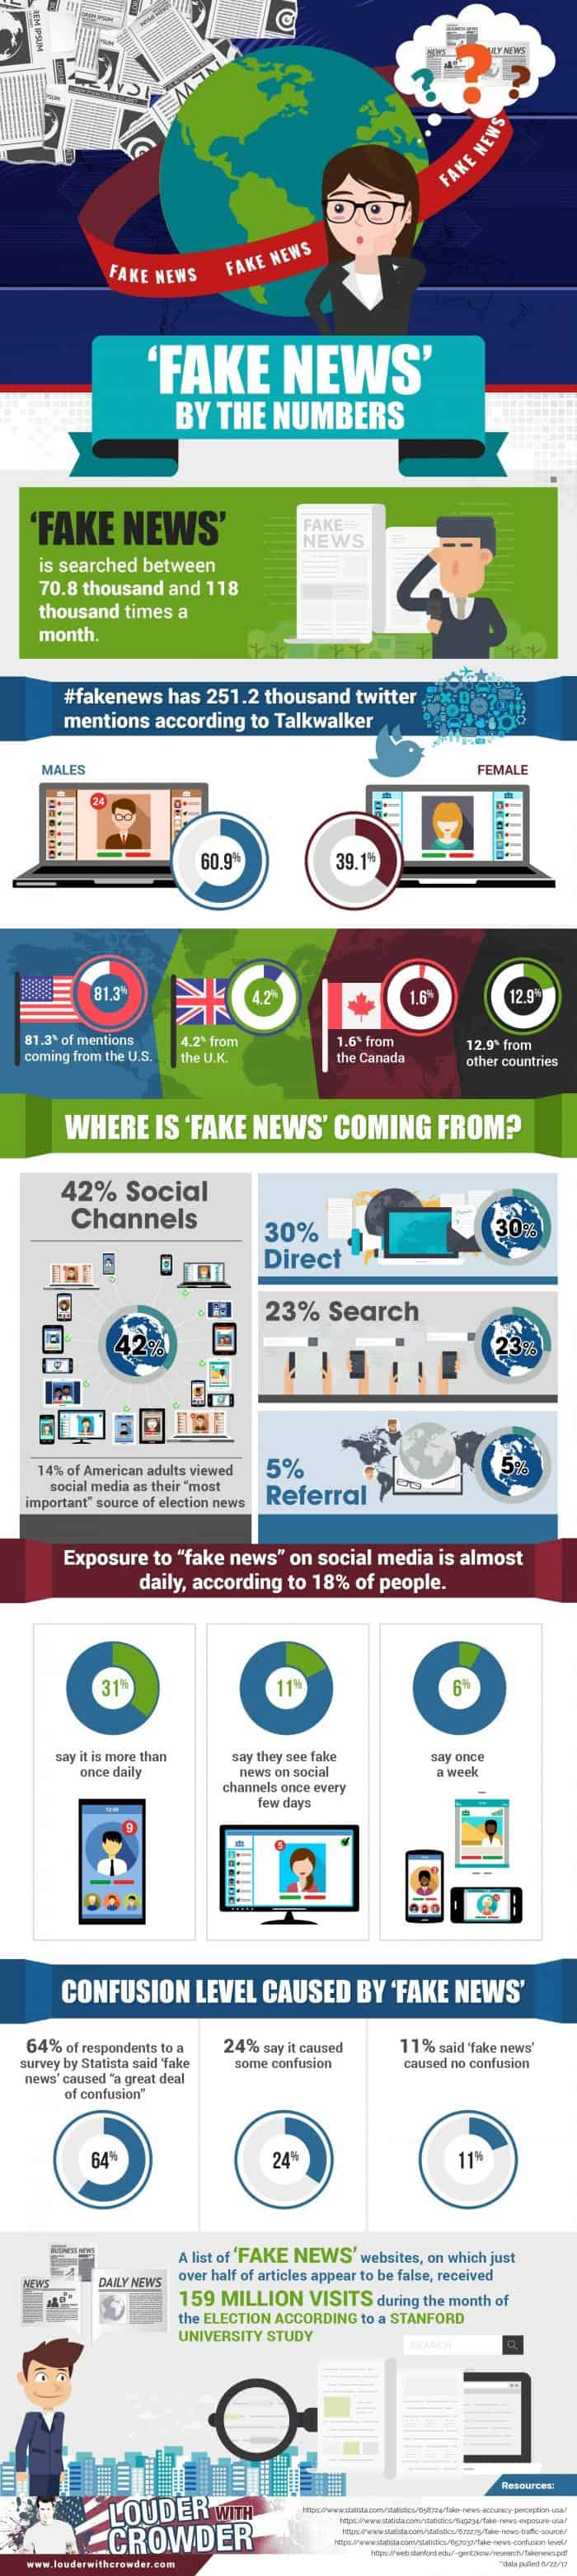 """Fake News"" by the Numbers"